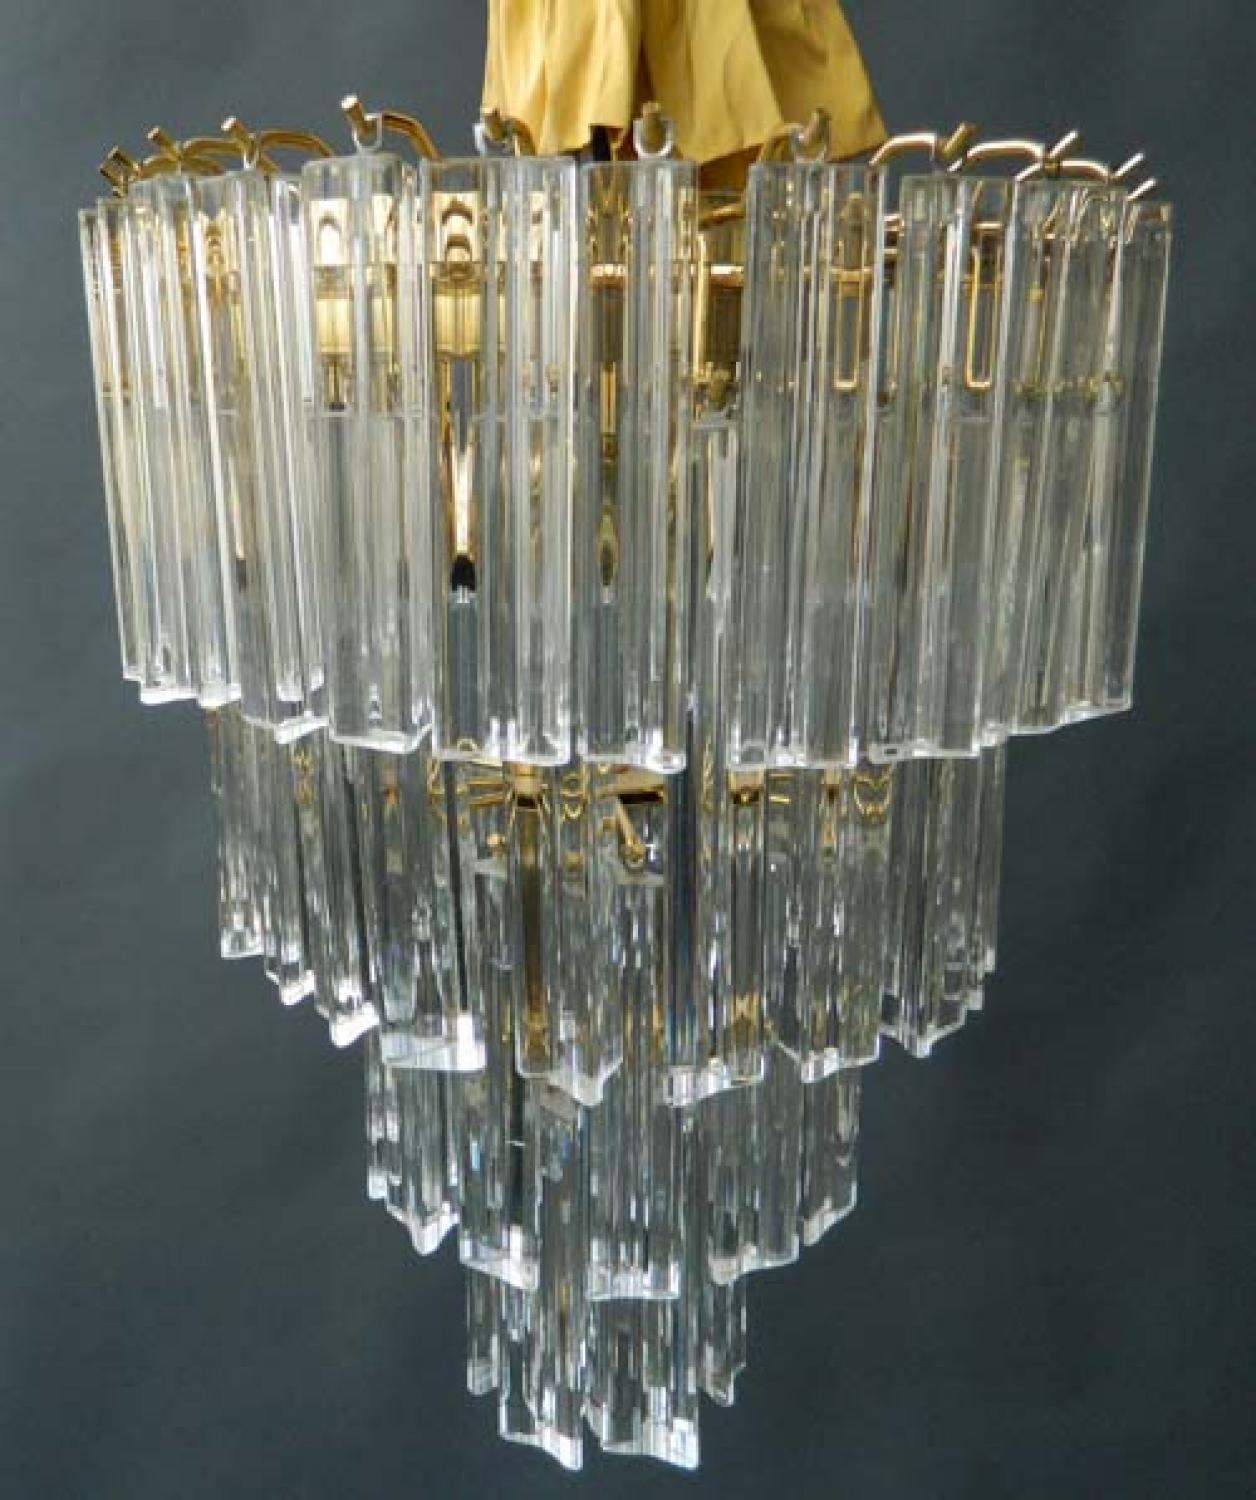 Murano Prism Chandelier: Murano Glass Prism Light Chandelier In Chandeliers